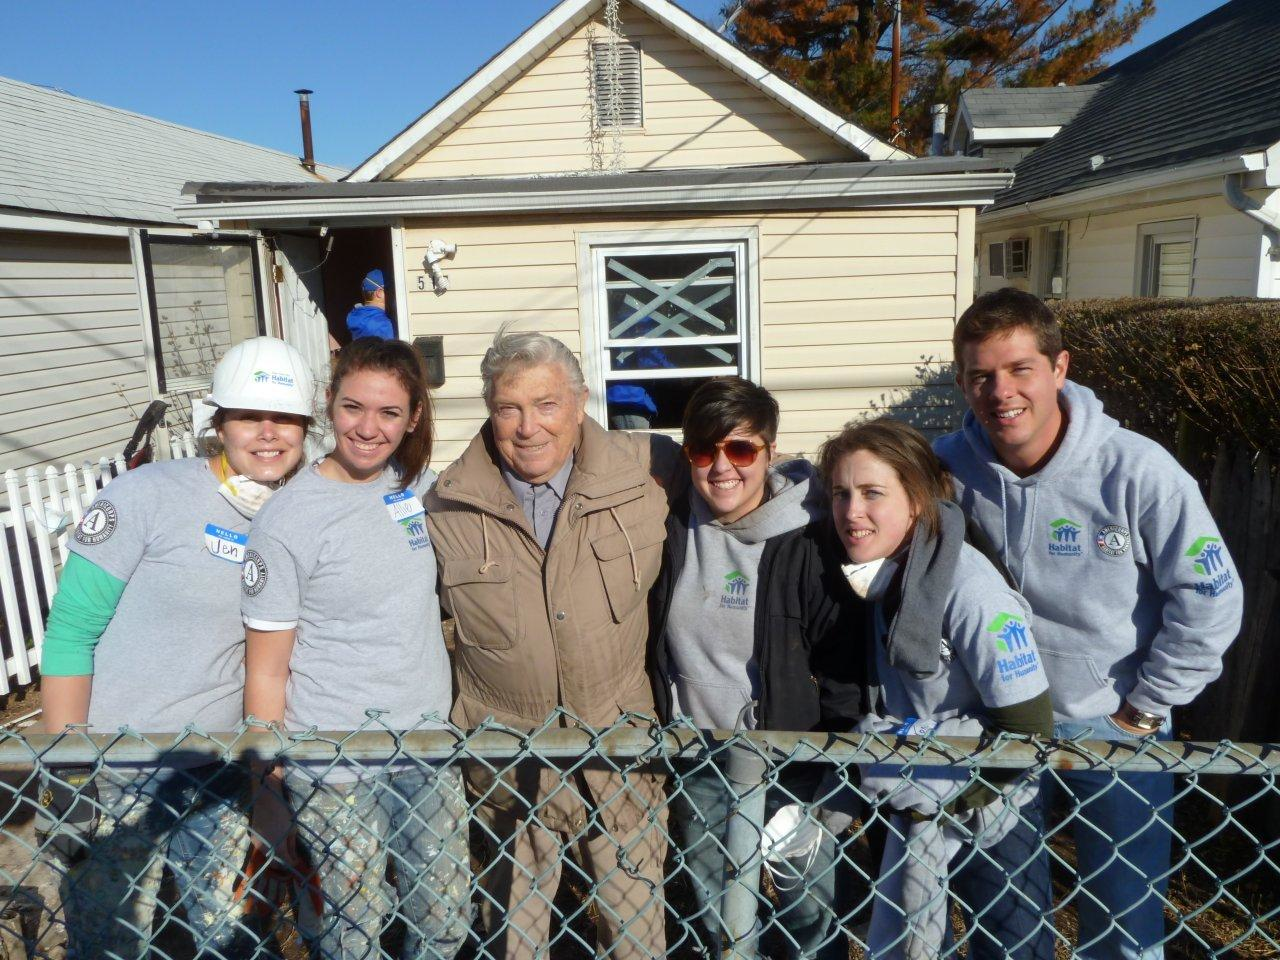 AmeriCorps members working with Habitat for Humanity pose with a homeowner in Staten Island, NY, who received repair assistance during the project. (Photo by Patricia Decker)